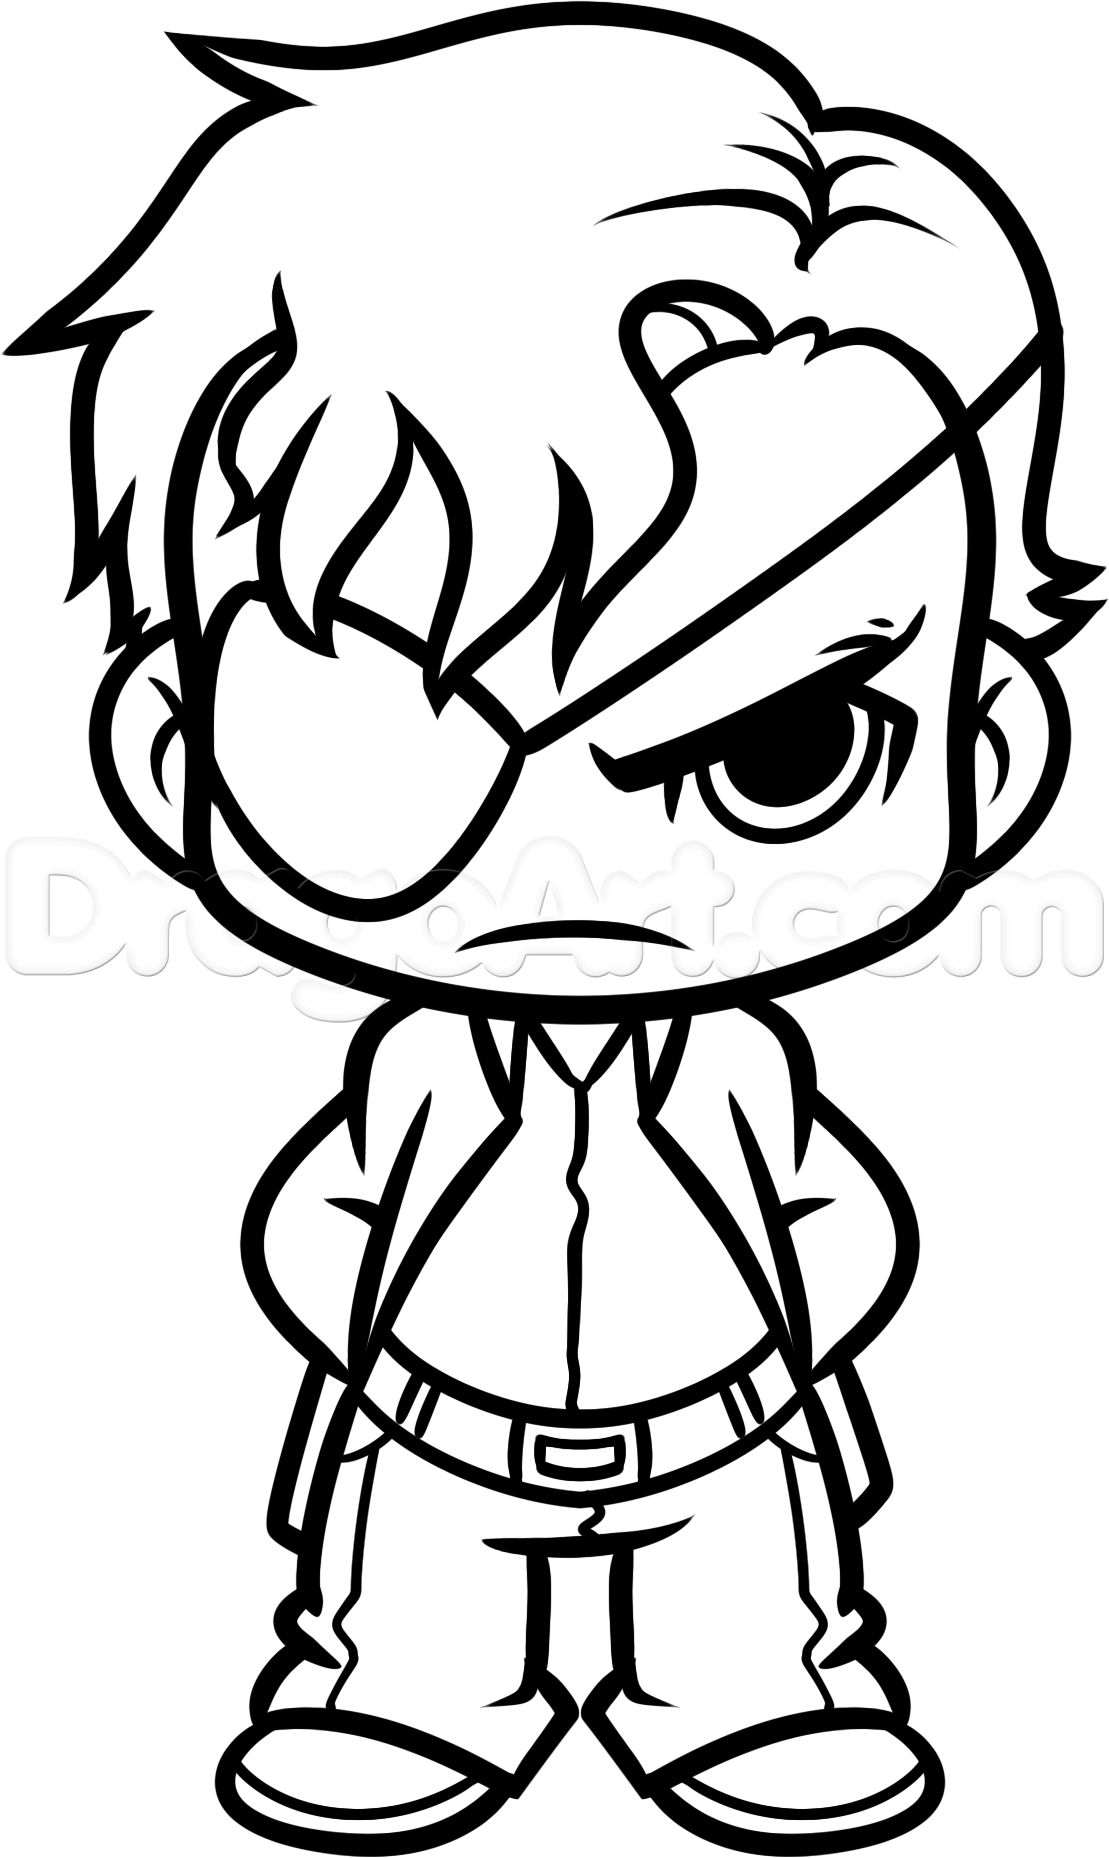 How To Draw Chibi Governor From The Walking Dead Step By